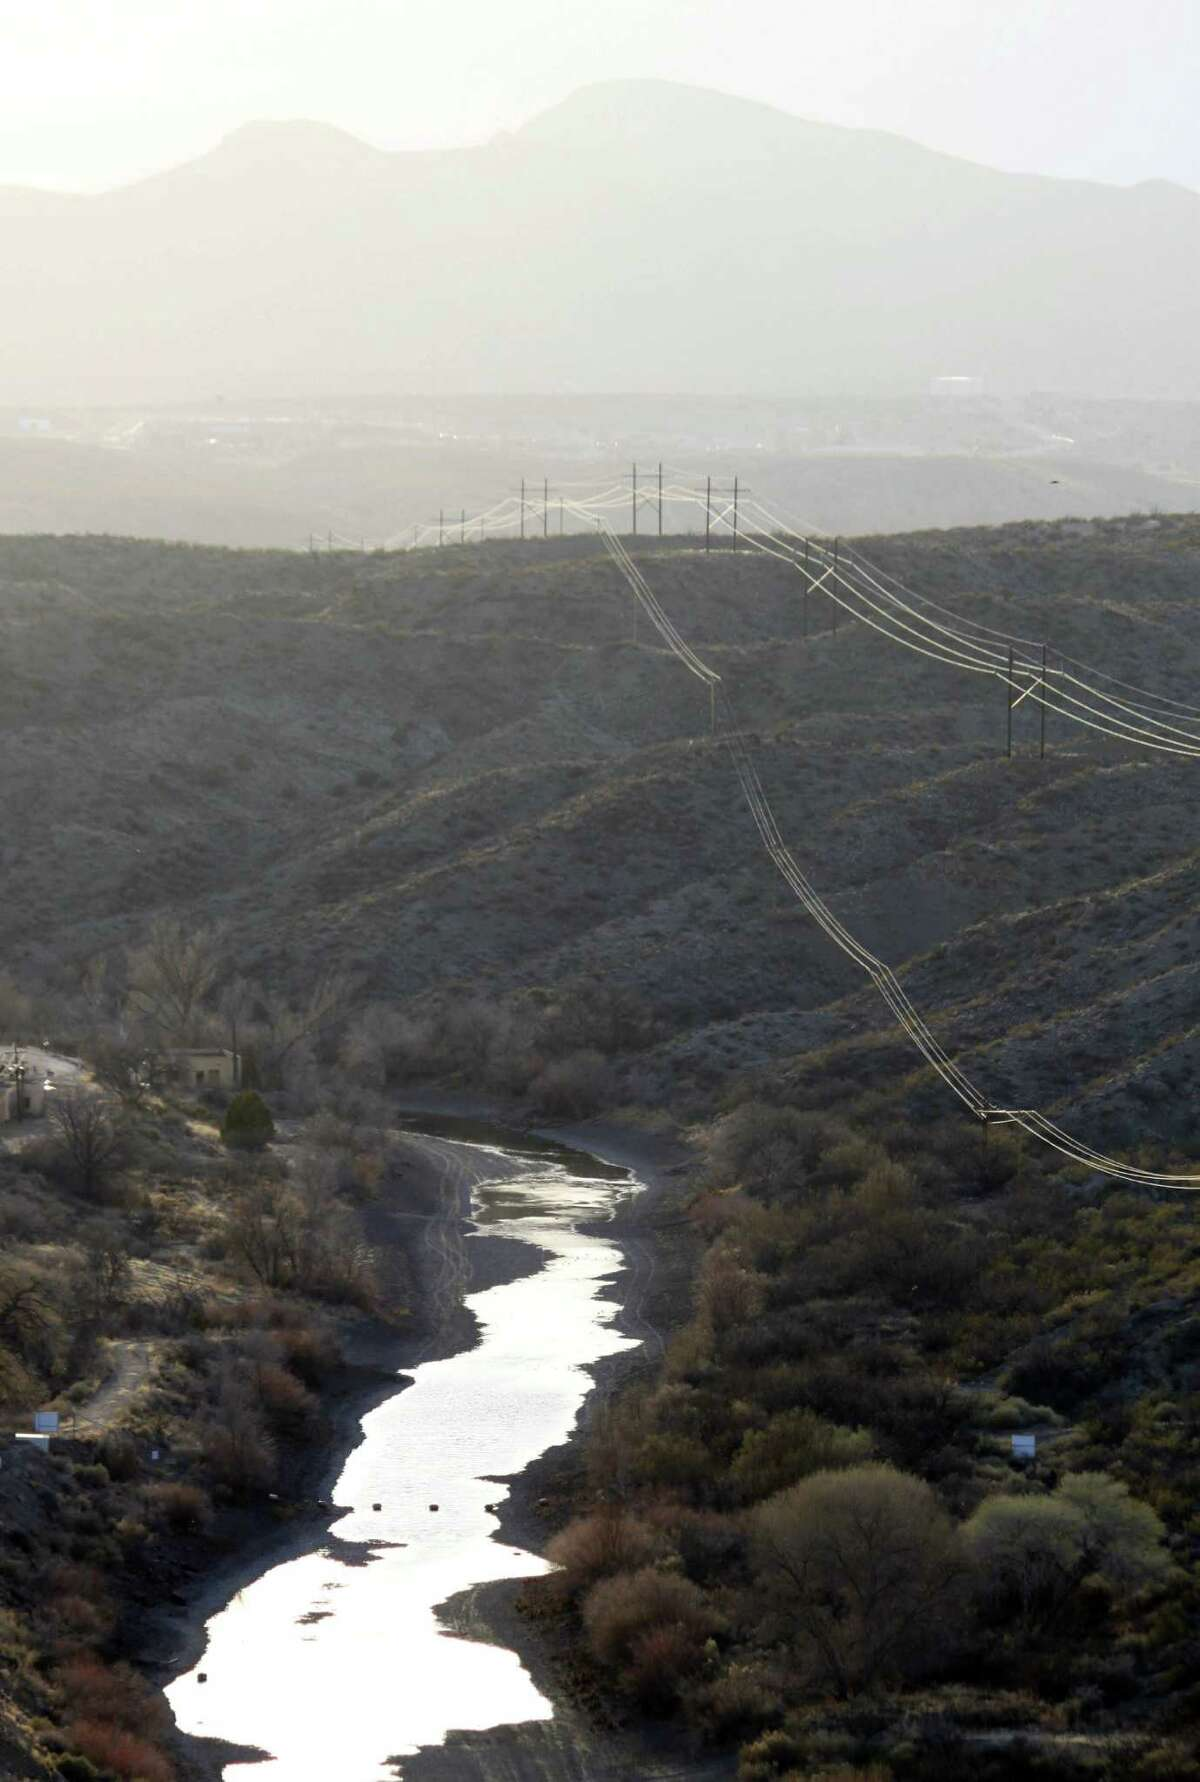 If Texas is ultimately successful, New Mexico could owe the state damages for taking its downstream neighbors' water. Some estimates of damages have reached as high as $1 billion, according to the Associated Press.